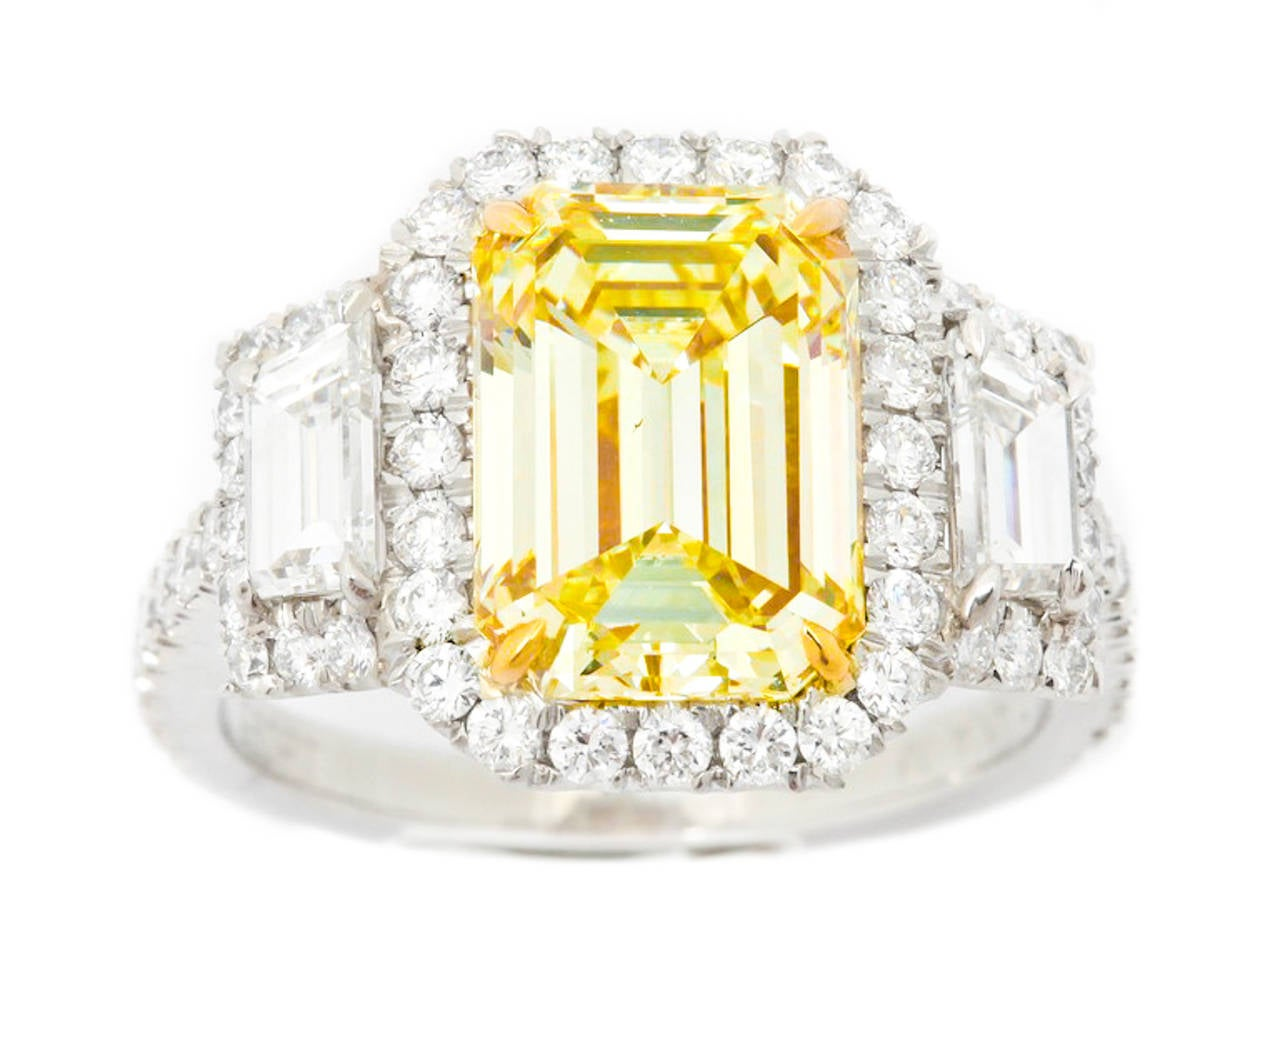 Platinum Fancy Yellow Diamond Ring, features absolutely flawless 3.36 Carats Fancy Light Yellow emerald cut diamond, VS2 in Clarity.  Set in diamond halo hand made mounting with two trapezoids and micropave around, totaling 1.55 carats.